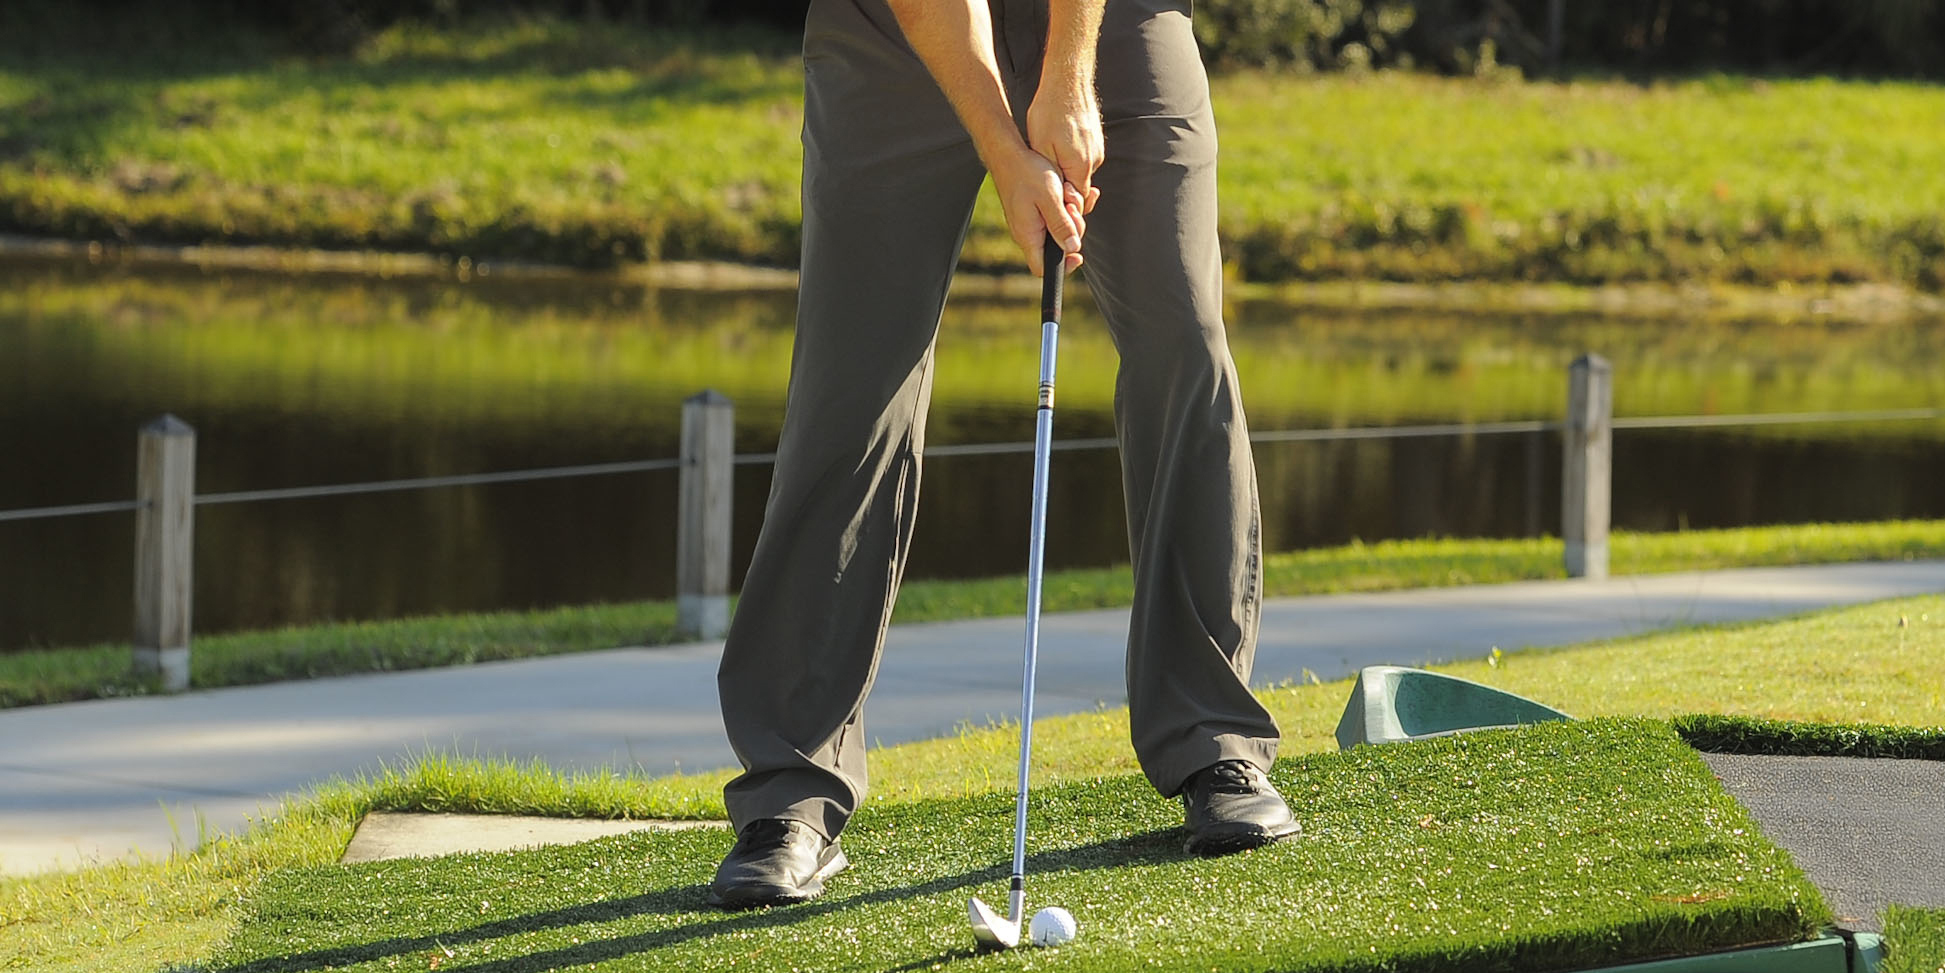 How to Play Uneven Lies in Golf